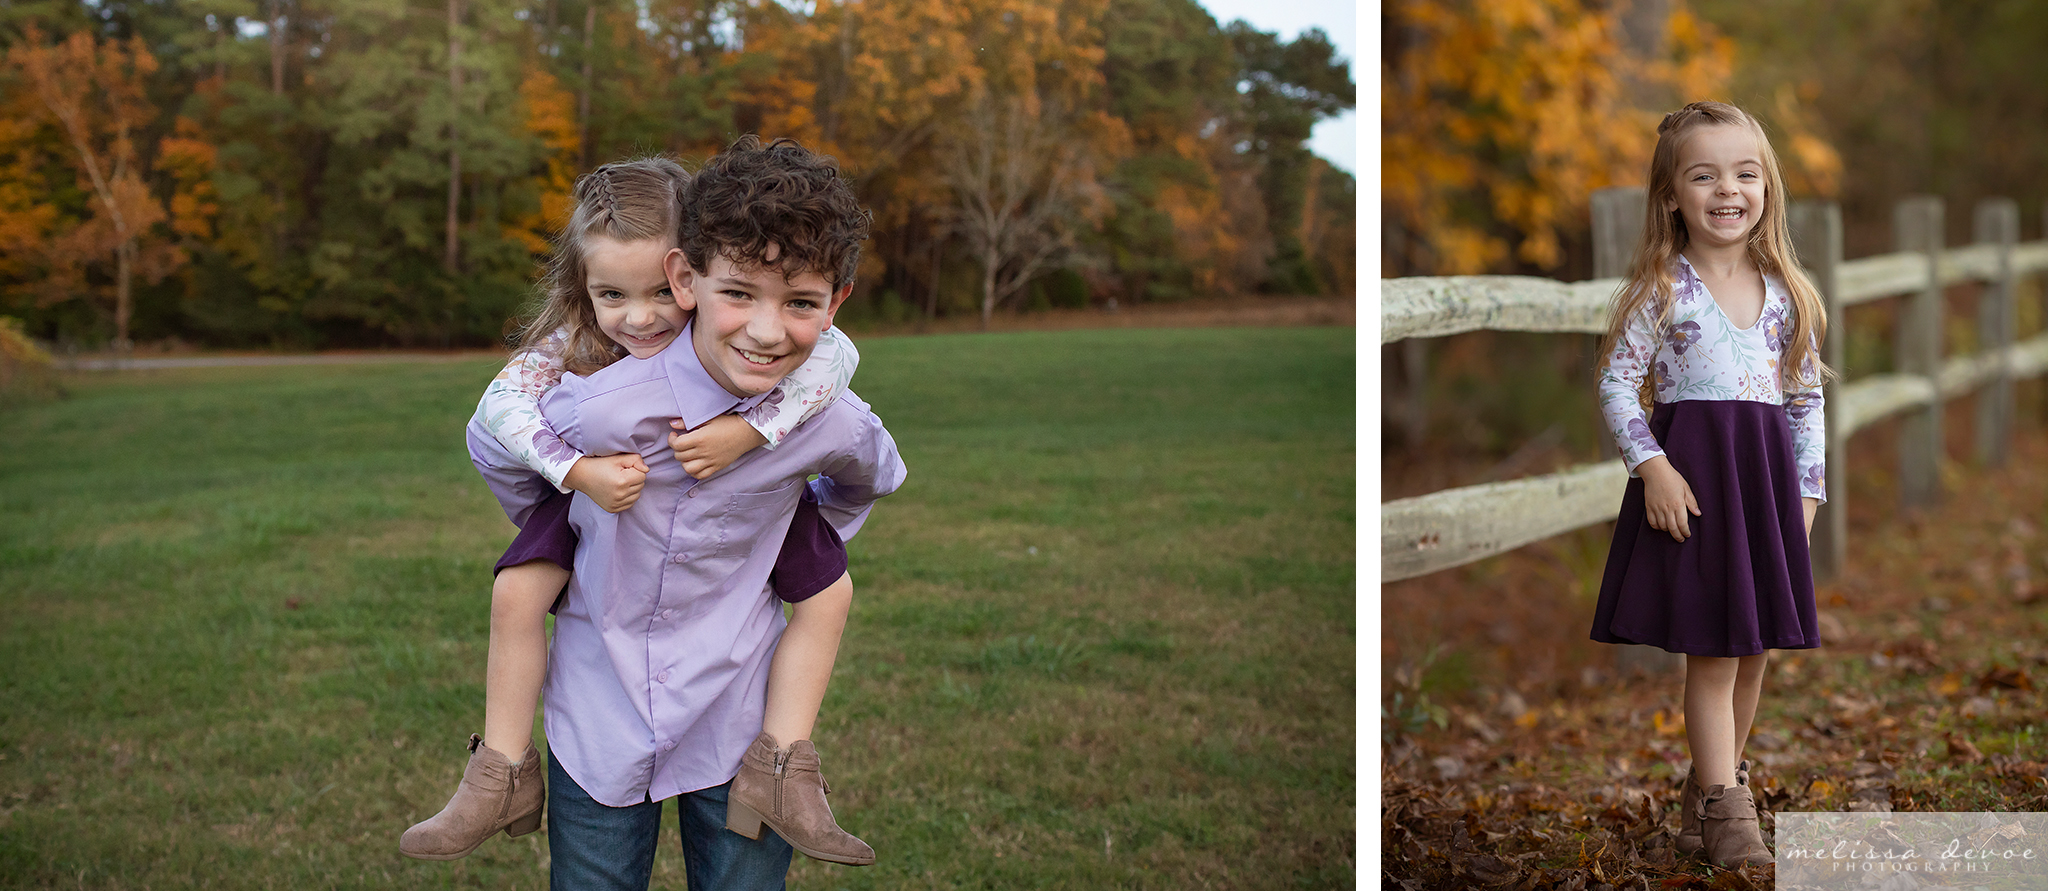 Fall Family Photo Session in Raleigh